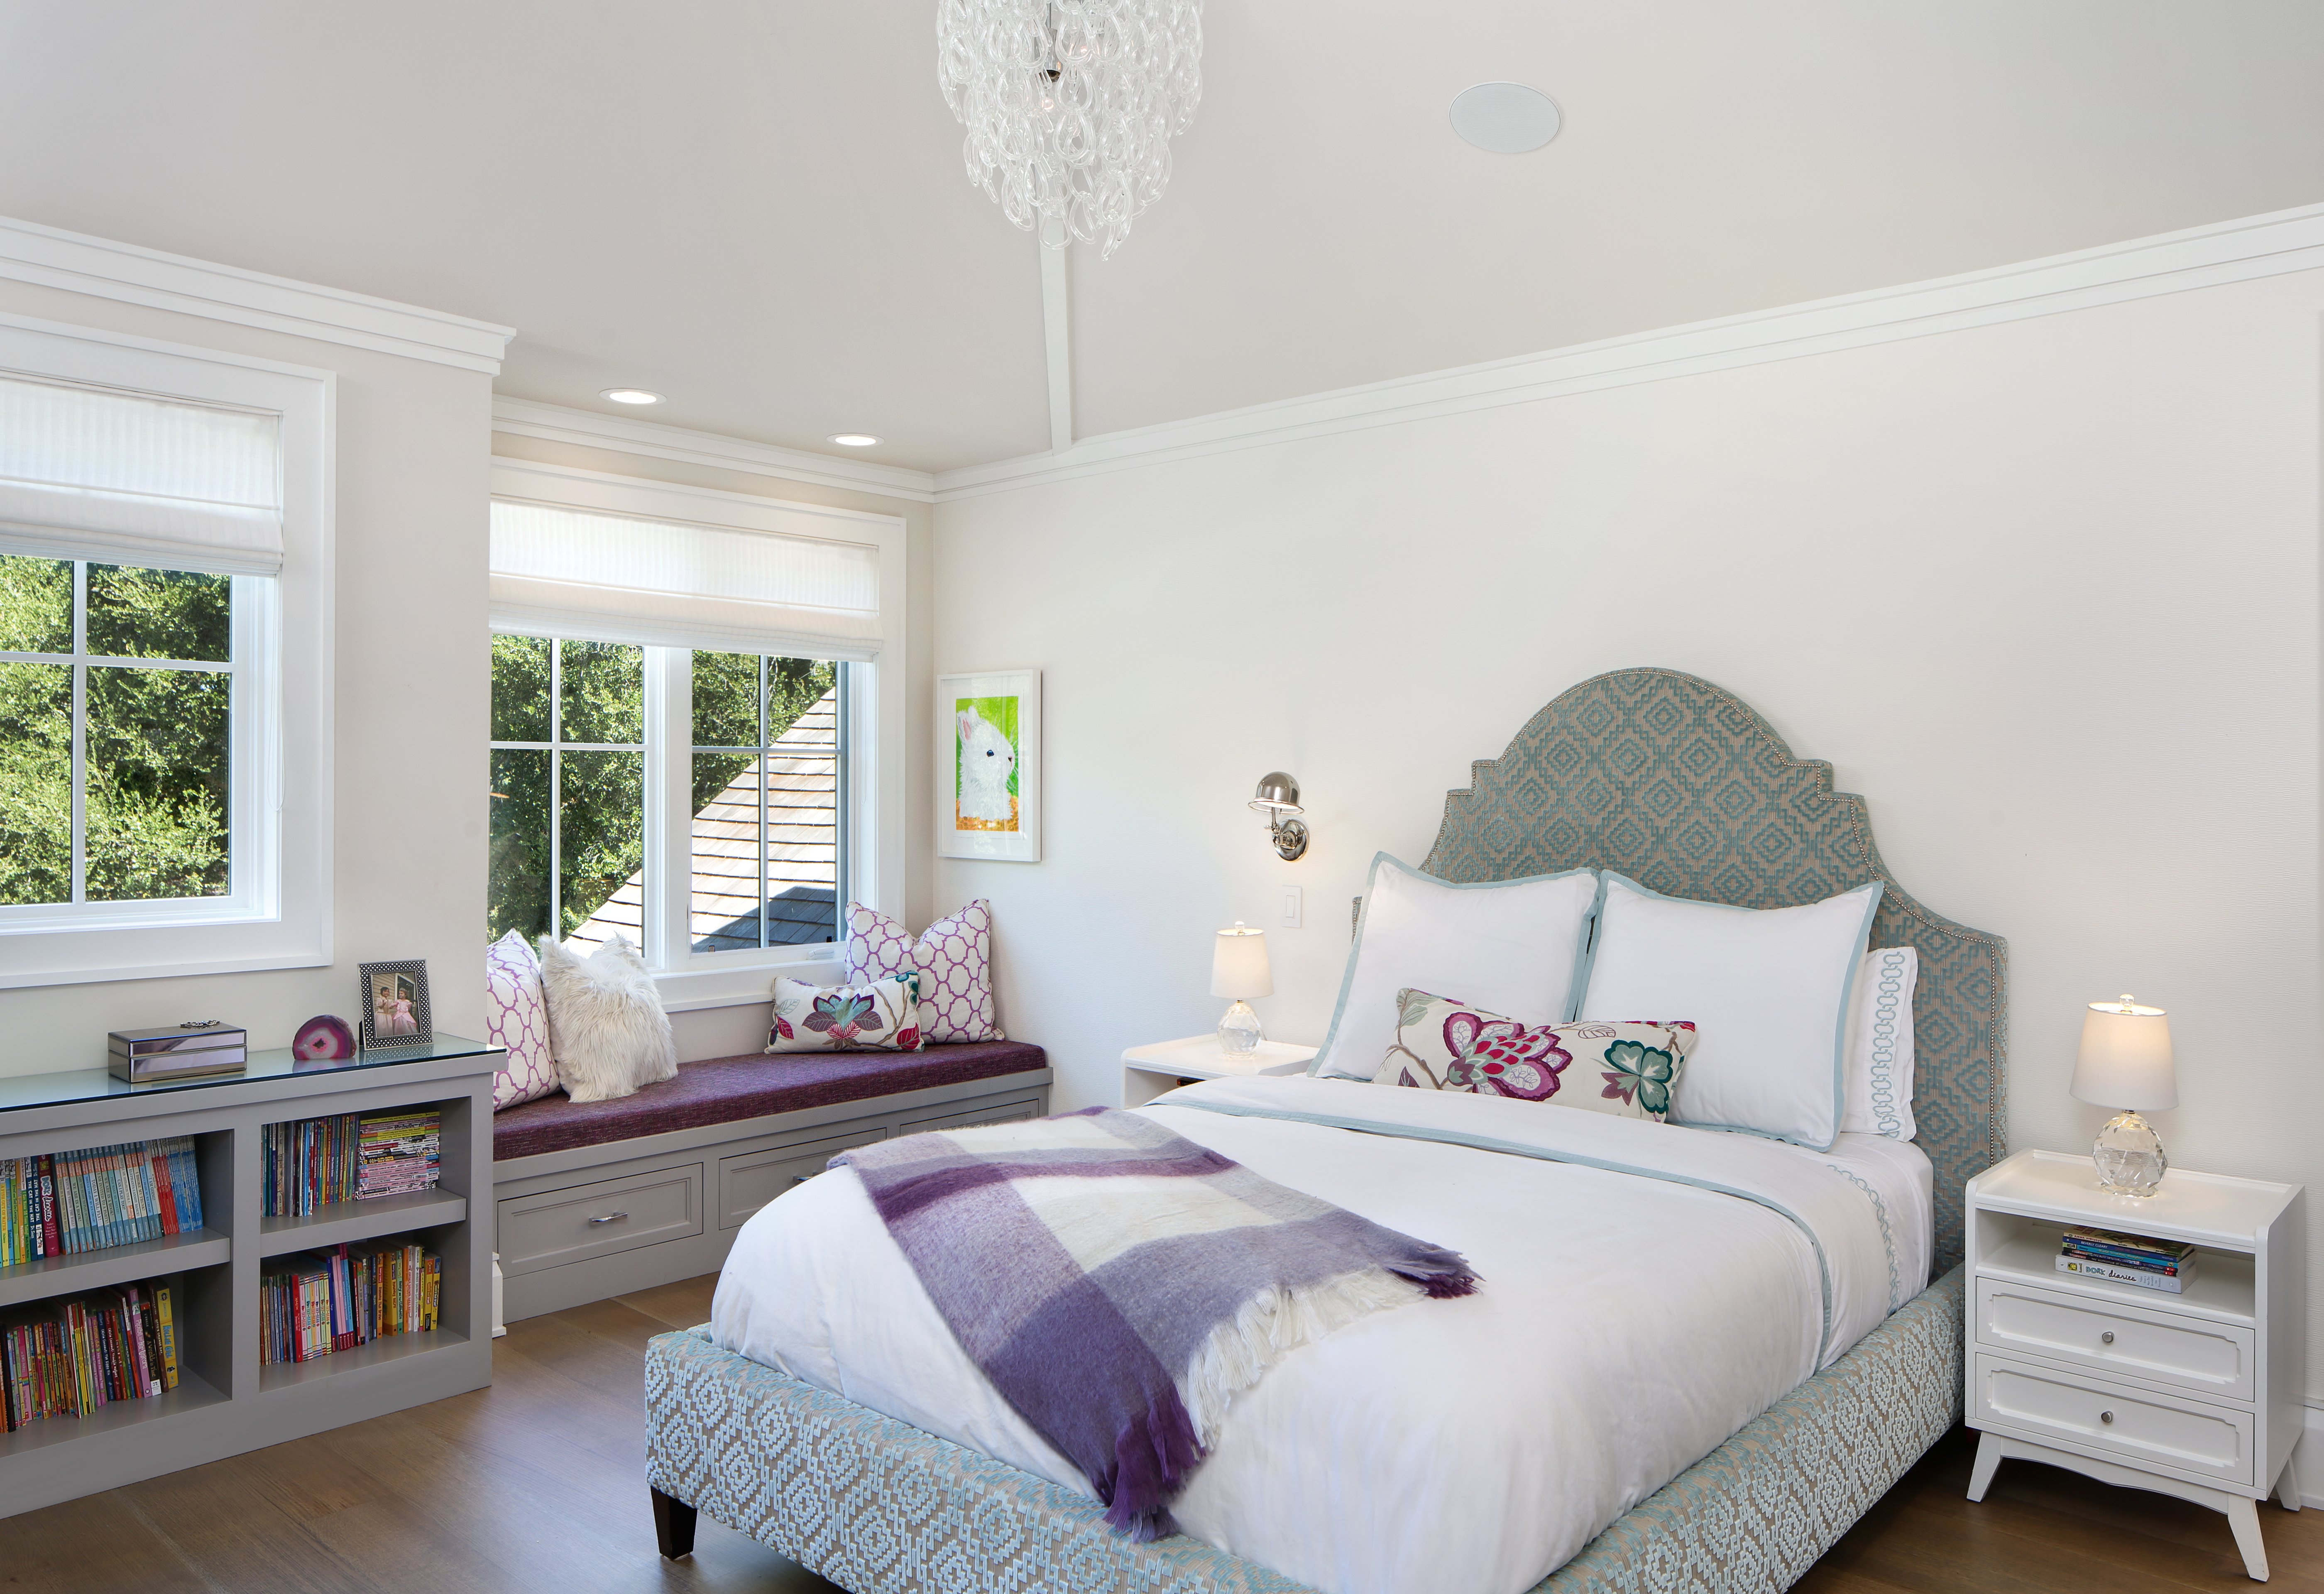 To create a space that is loved by both children and adults, the team pairs gray cabinetry and bright walls with light blue and purple accents. The bright Cowtan & Tout wallcovering adds subtle texture to the girl's bedroom, while the crystal light fixtures add a touch of elegance. The bed is from Bernhardt Lindsey and is upholstered with Harris Fabric. The duvet, sheets, and shams are from Serena & Lily and the nightstands are from The Land of Nod.